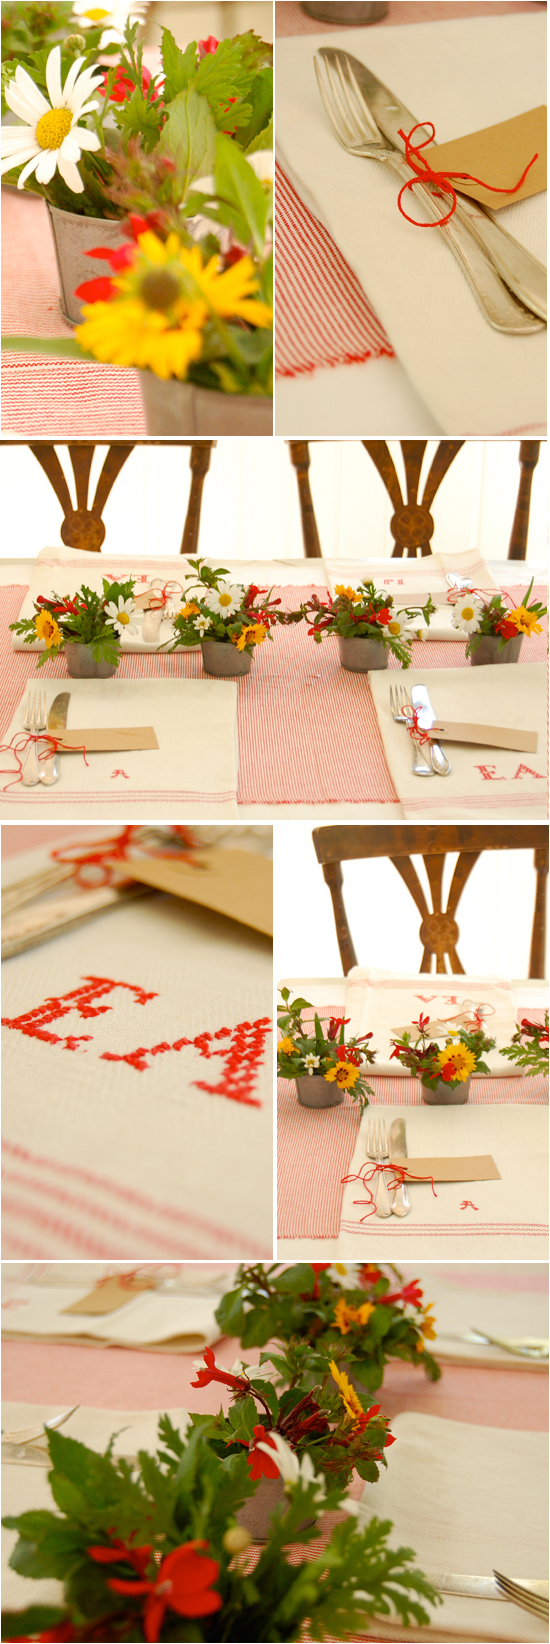 DIY: The Farm-Inspired Table Setting - Project Wedding